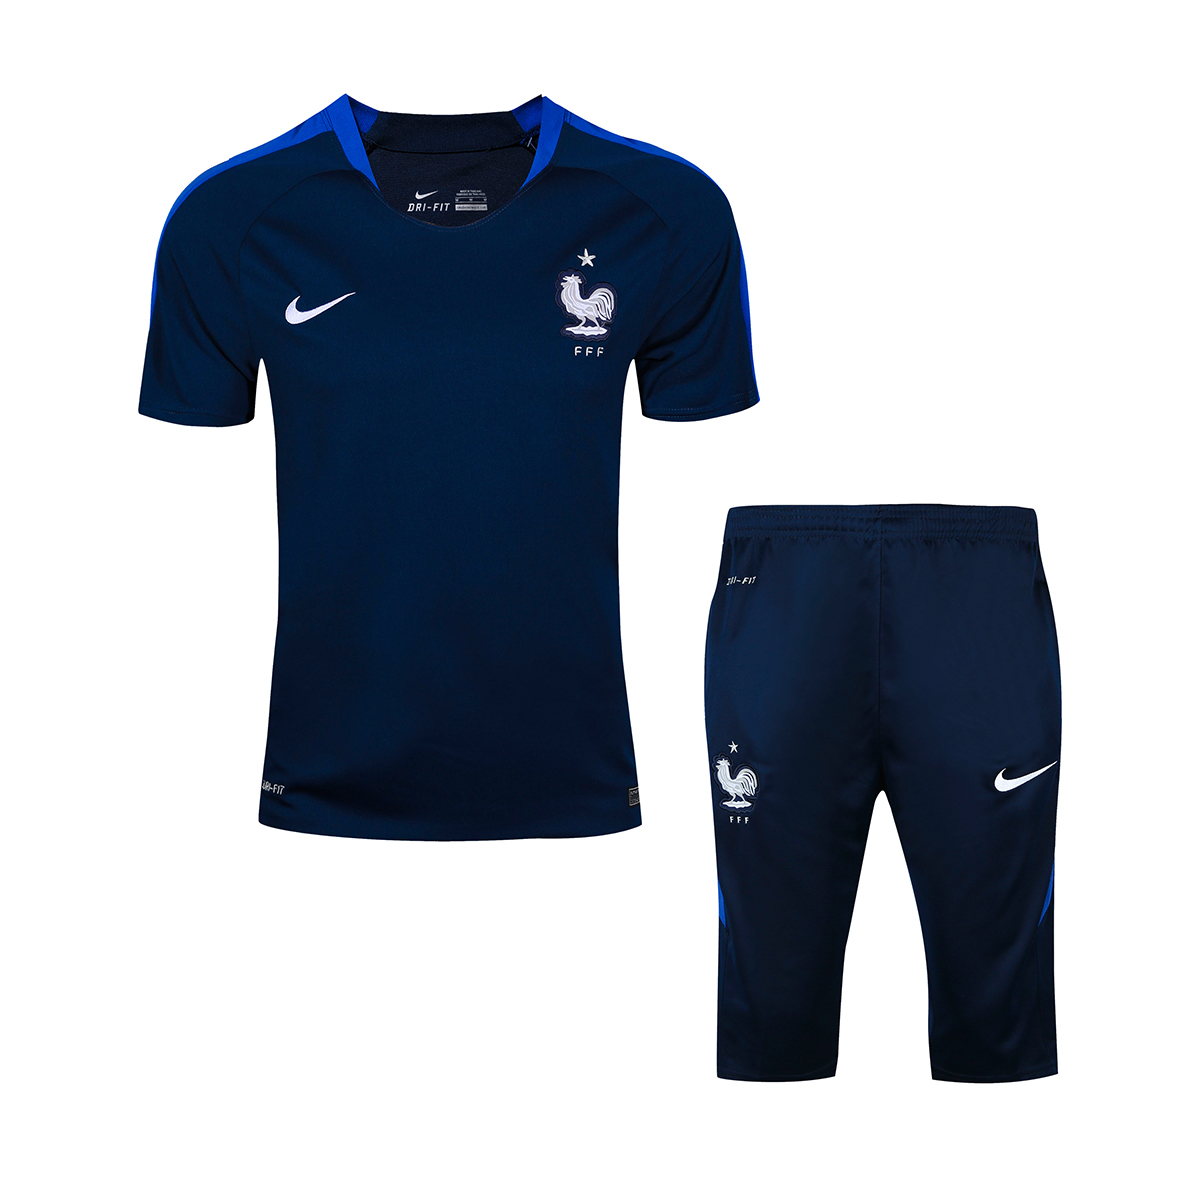 NIKE FRANCE NAVY BLUE 2016 2017 Soccer Tracksuit chandal football Training  Suits Survetement Football tracksuits short sleeve jerseys fifth middle  pants ... 8cc76c75a7721